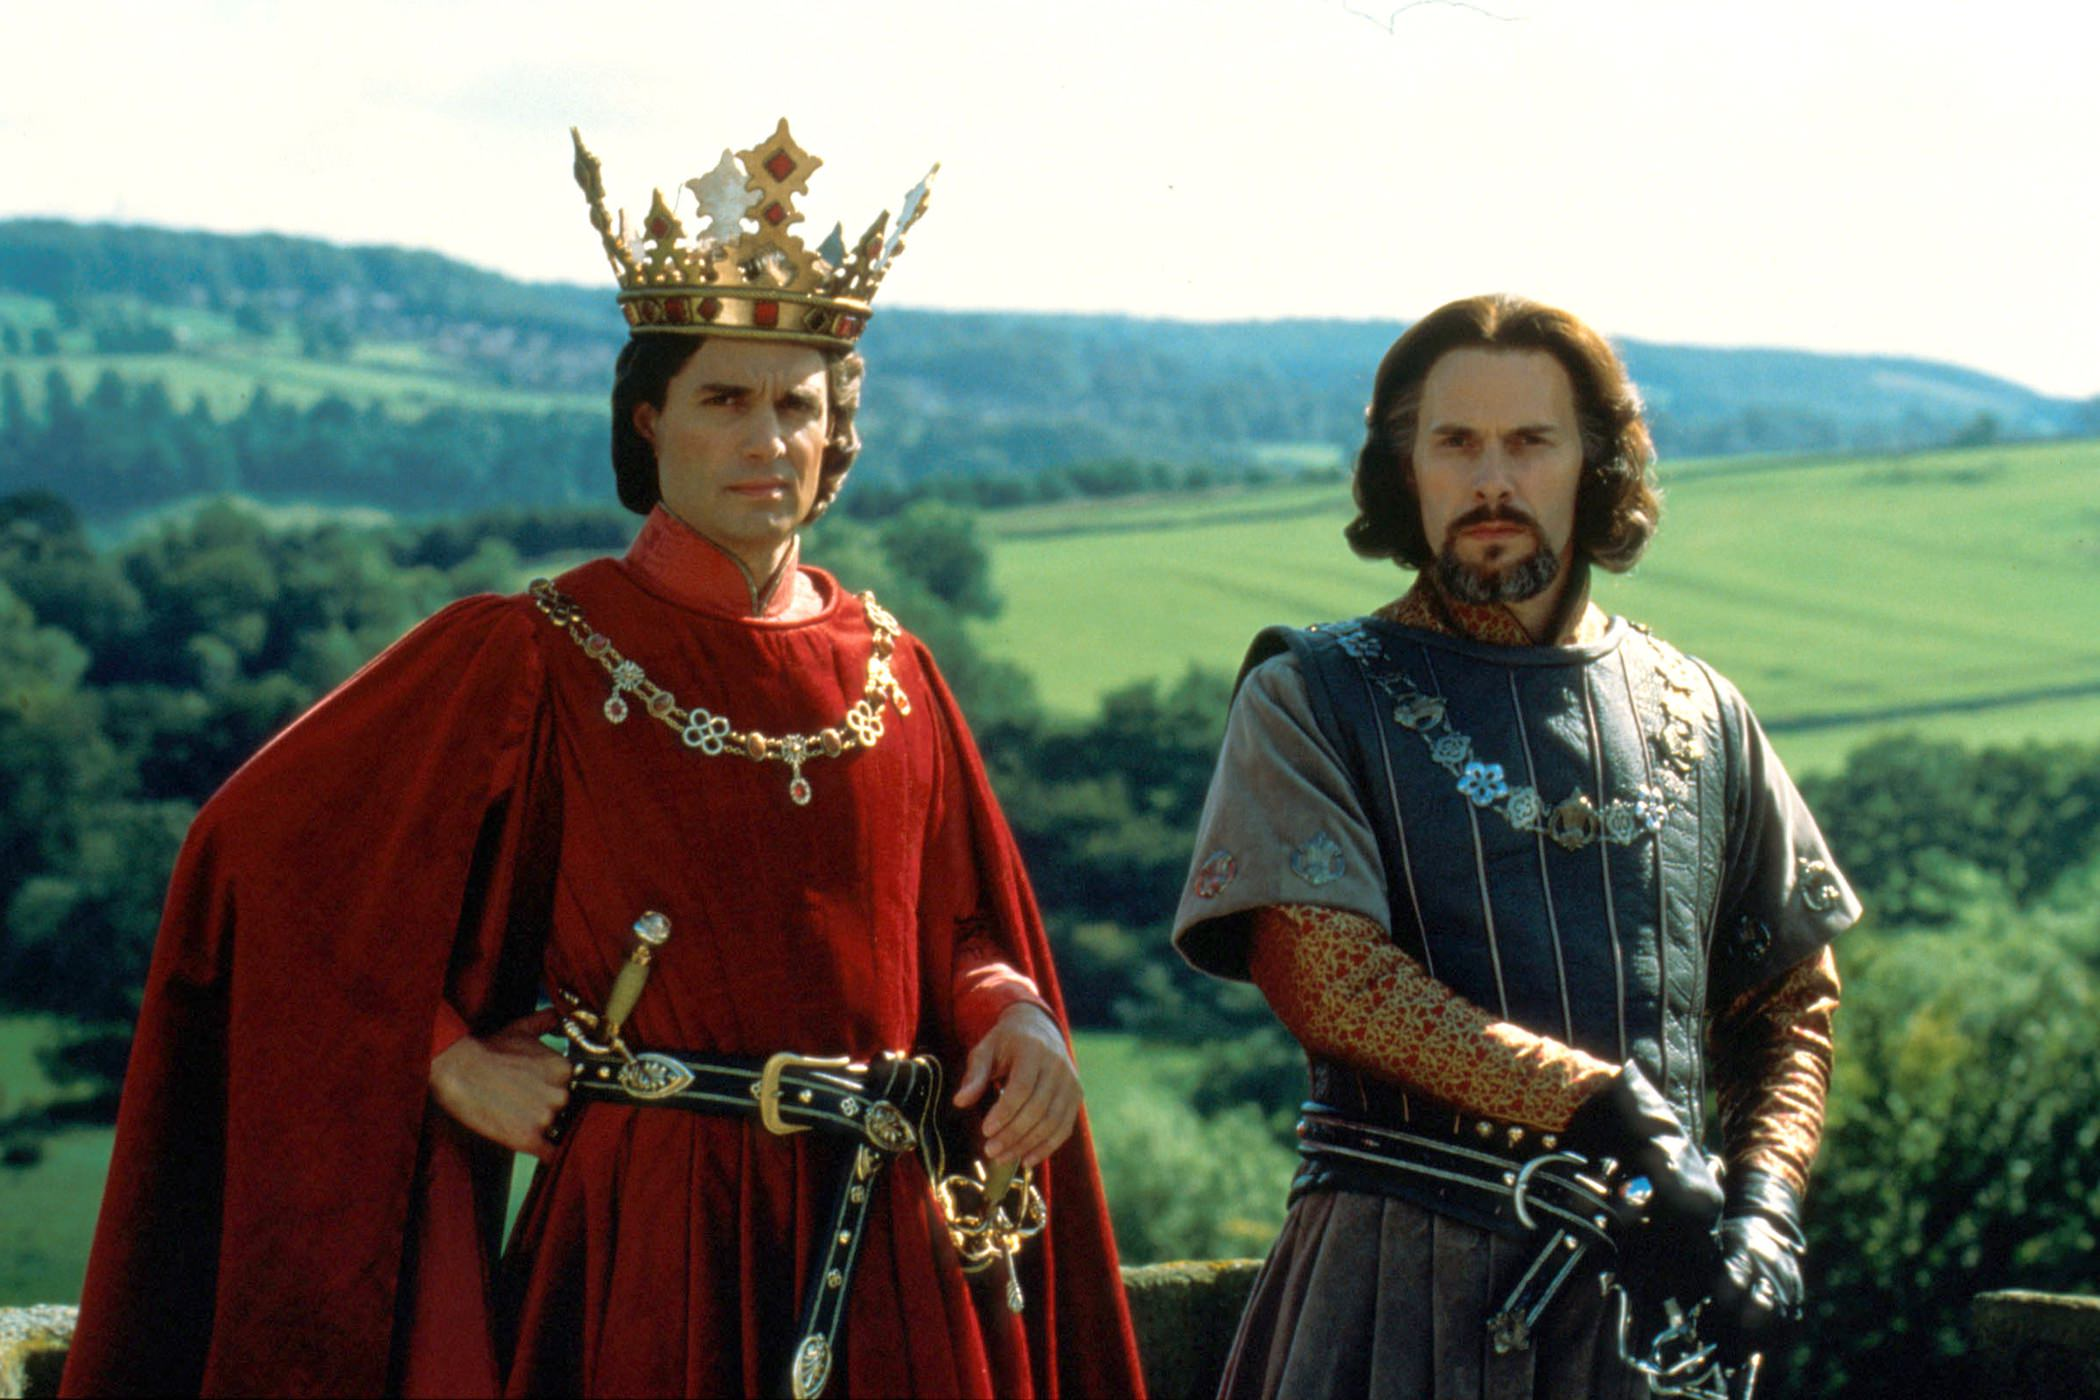 Princess bride christopher guest chris sarandon reiner